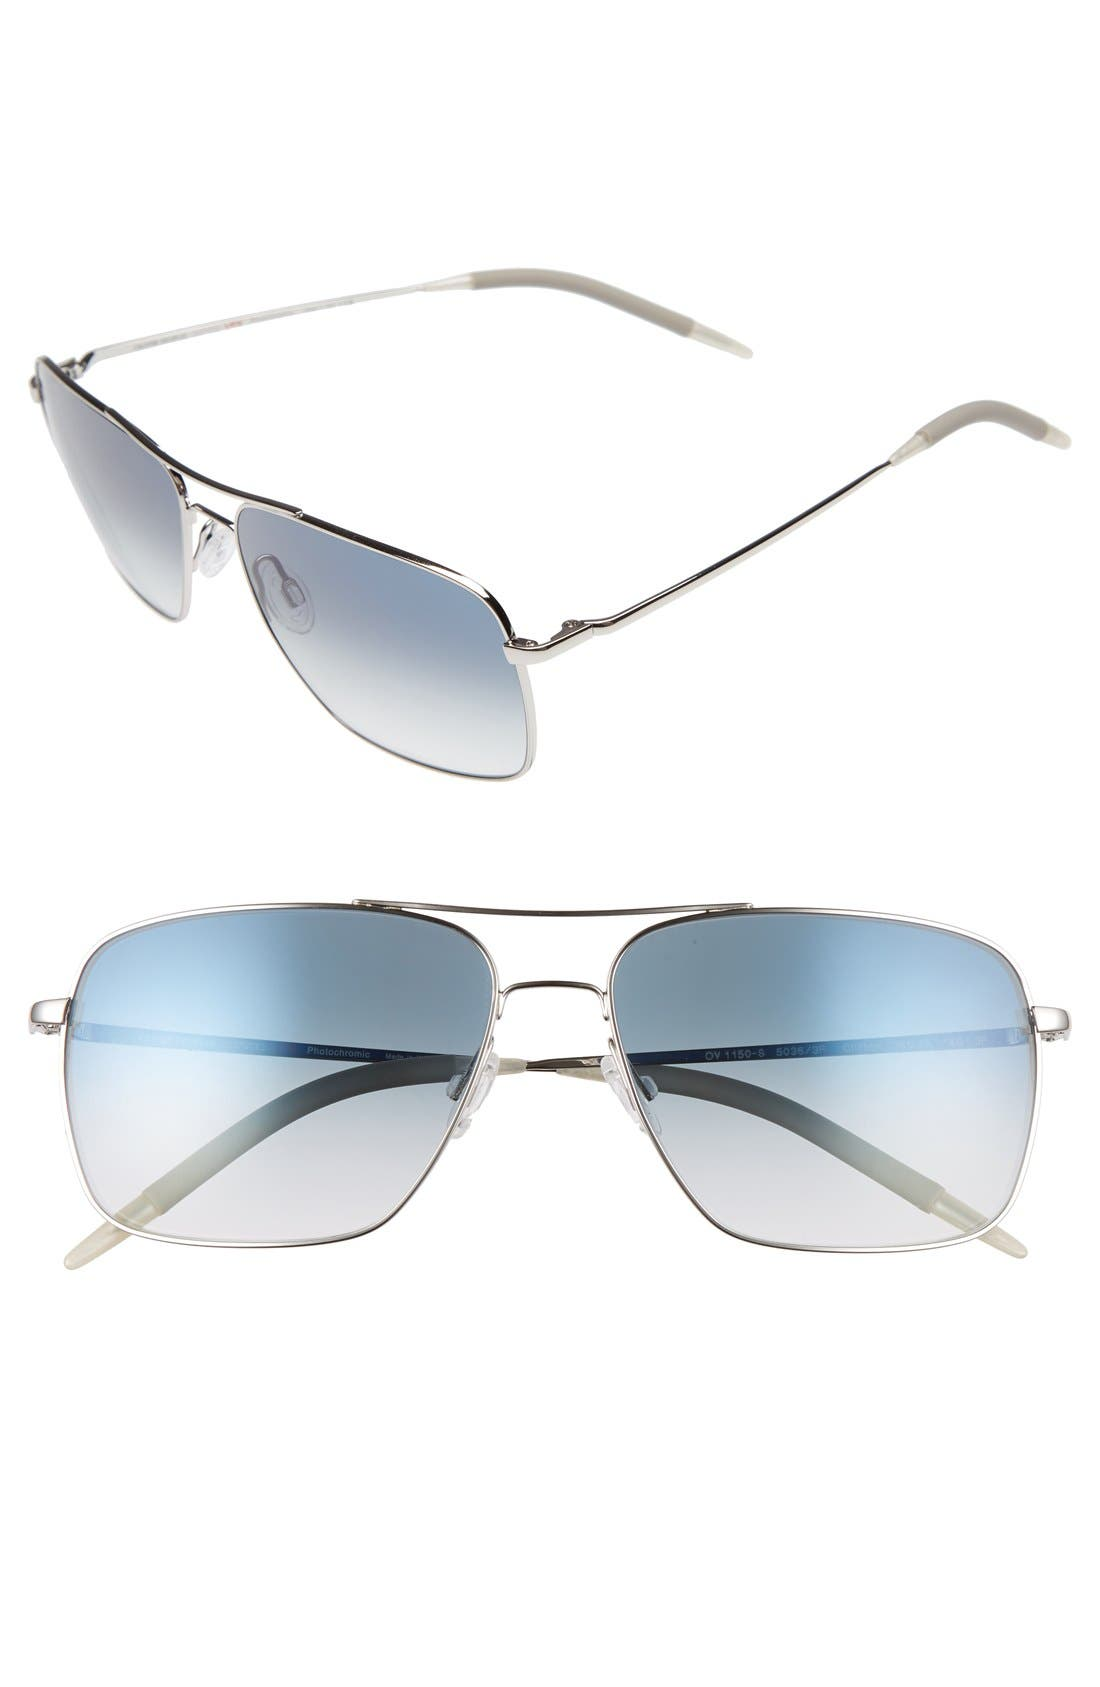 Clifton 58mm Aviator Sunglasses,                             Alternate thumbnail 2, color,                             SILVER